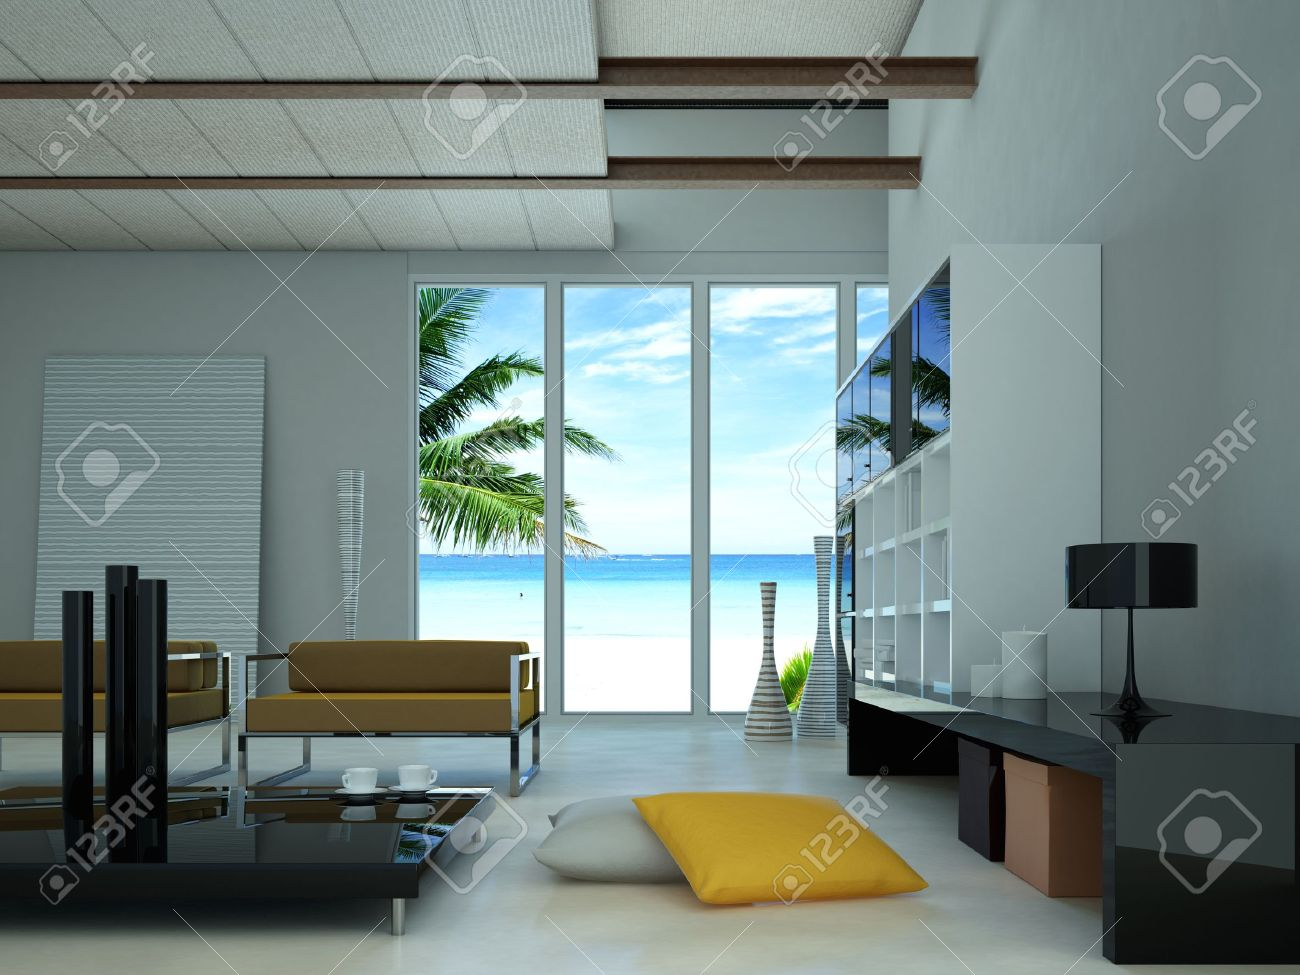 Modern livingroom, with a large window showing a tropical beach with a palm outside. Stock Photo - 11924591